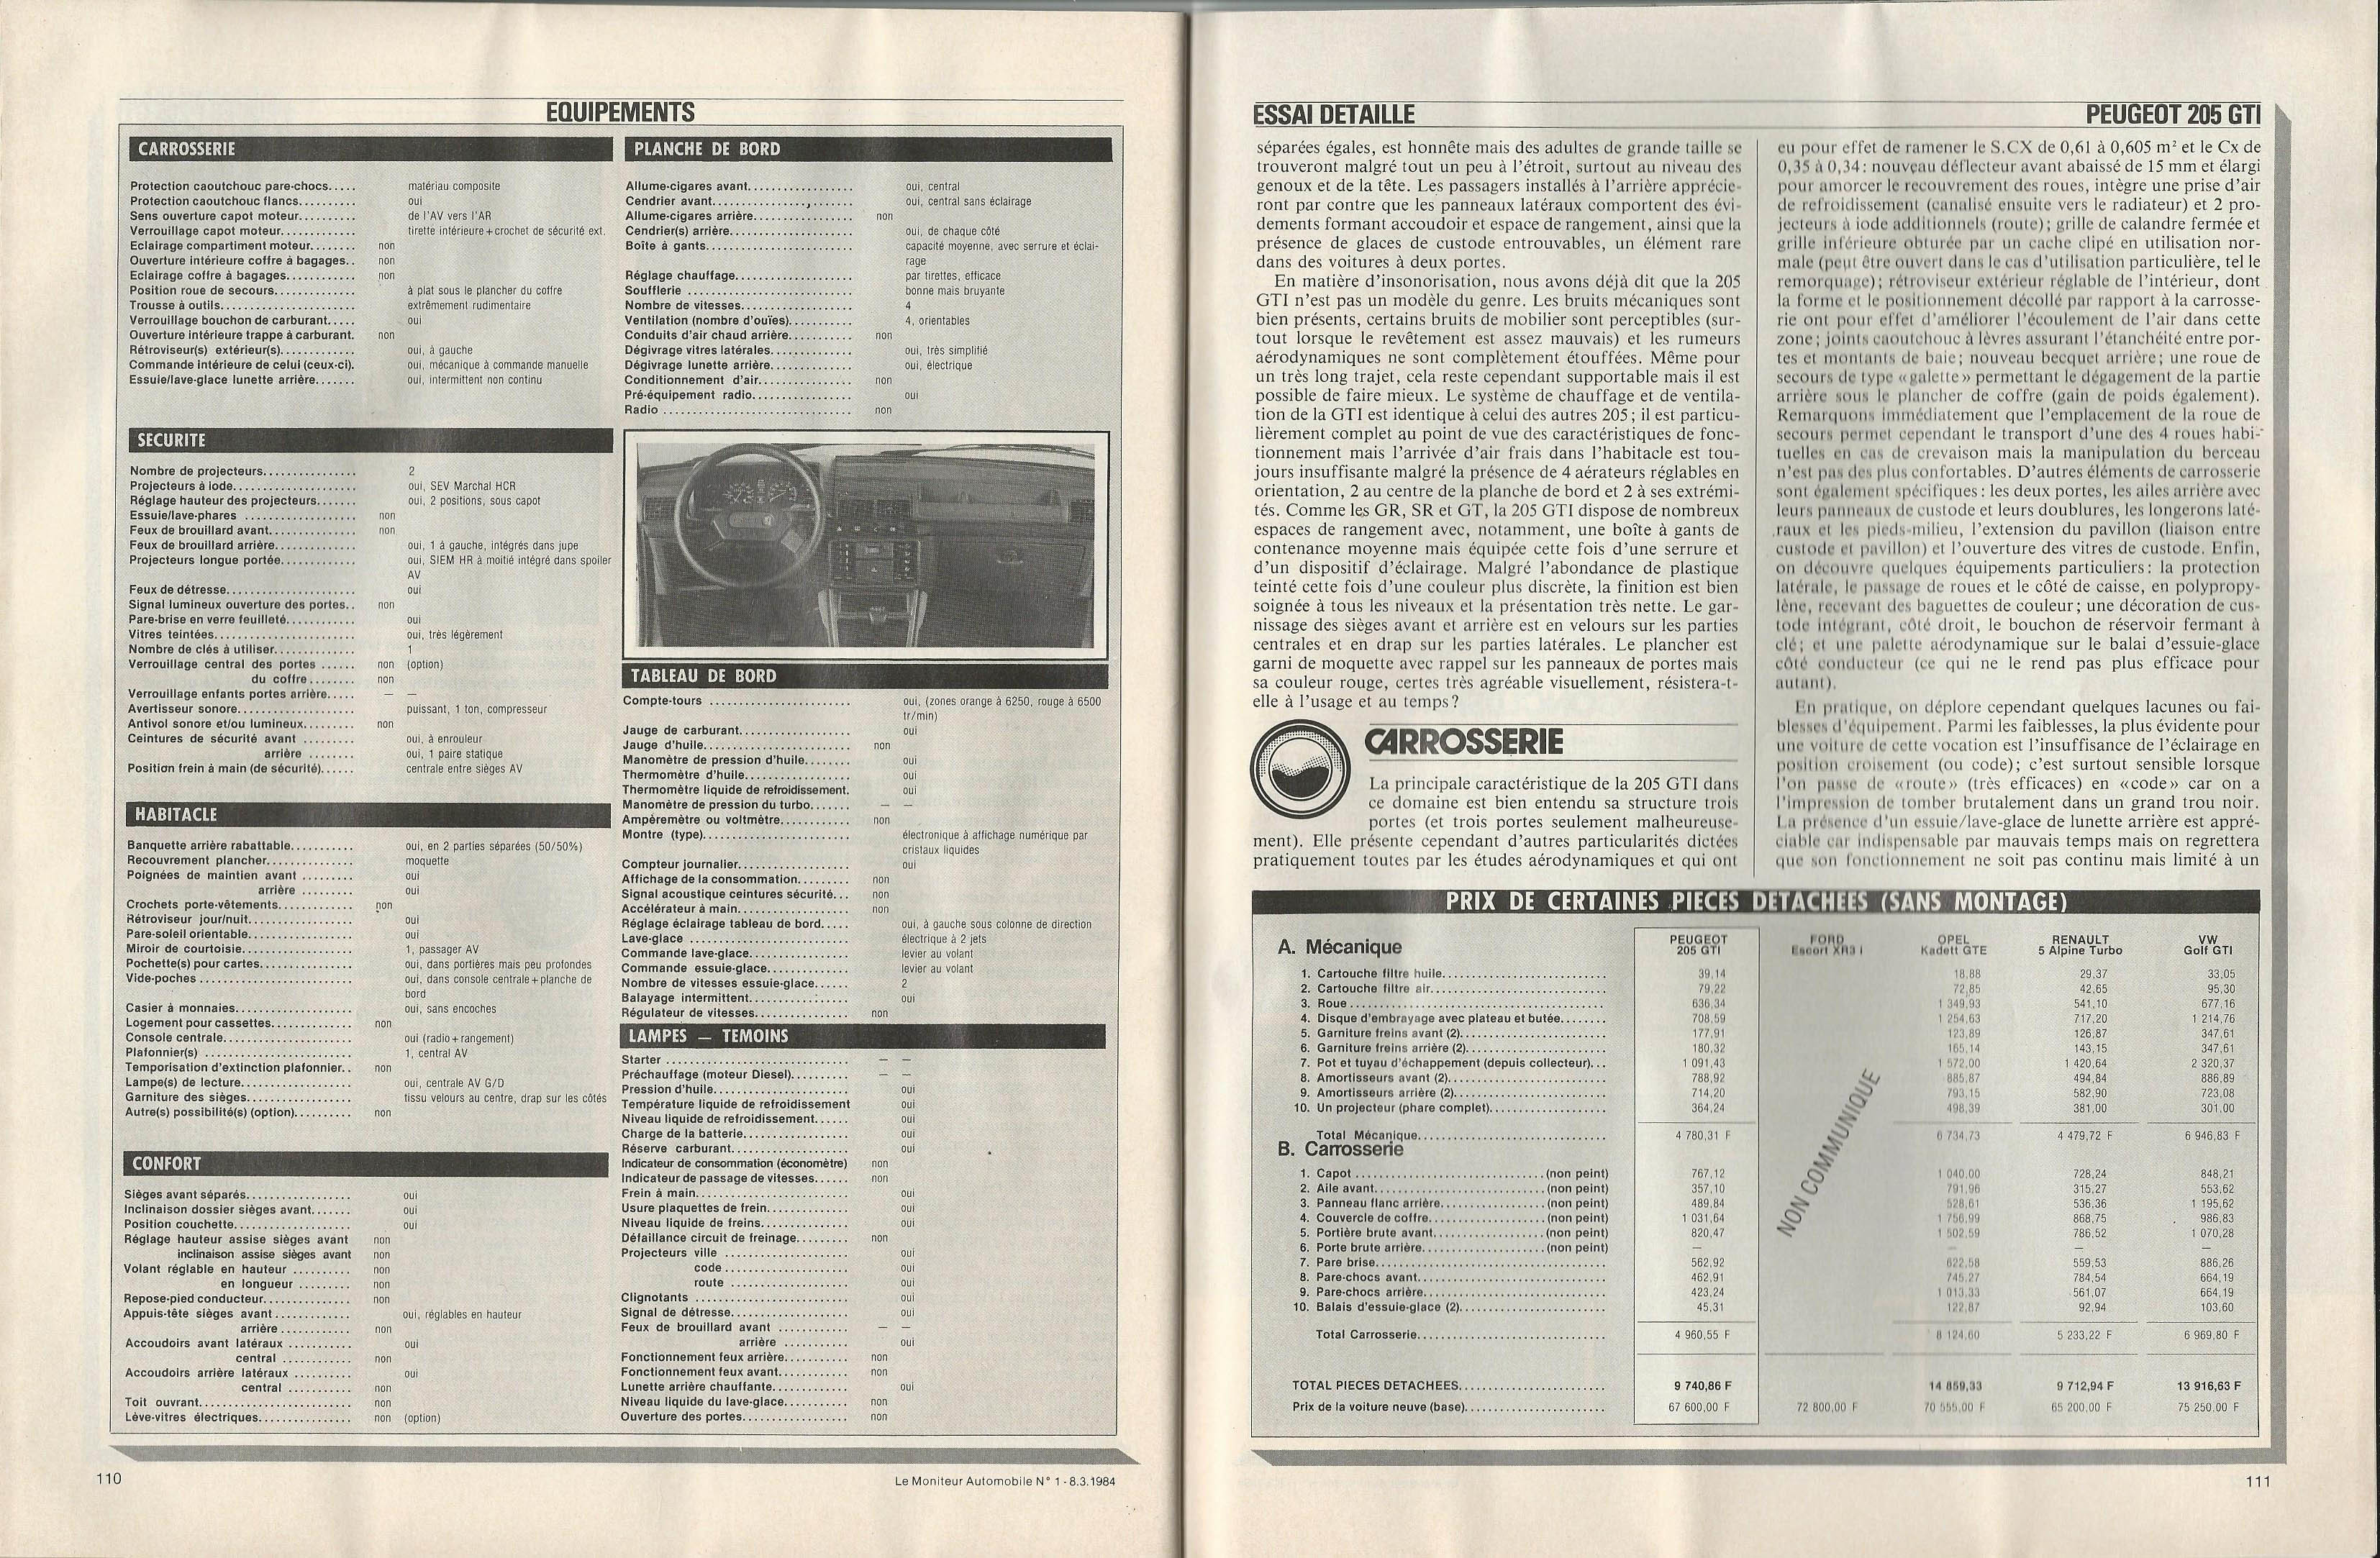 Moniteur Automobile 01 - 08 Mars 1984 (47)